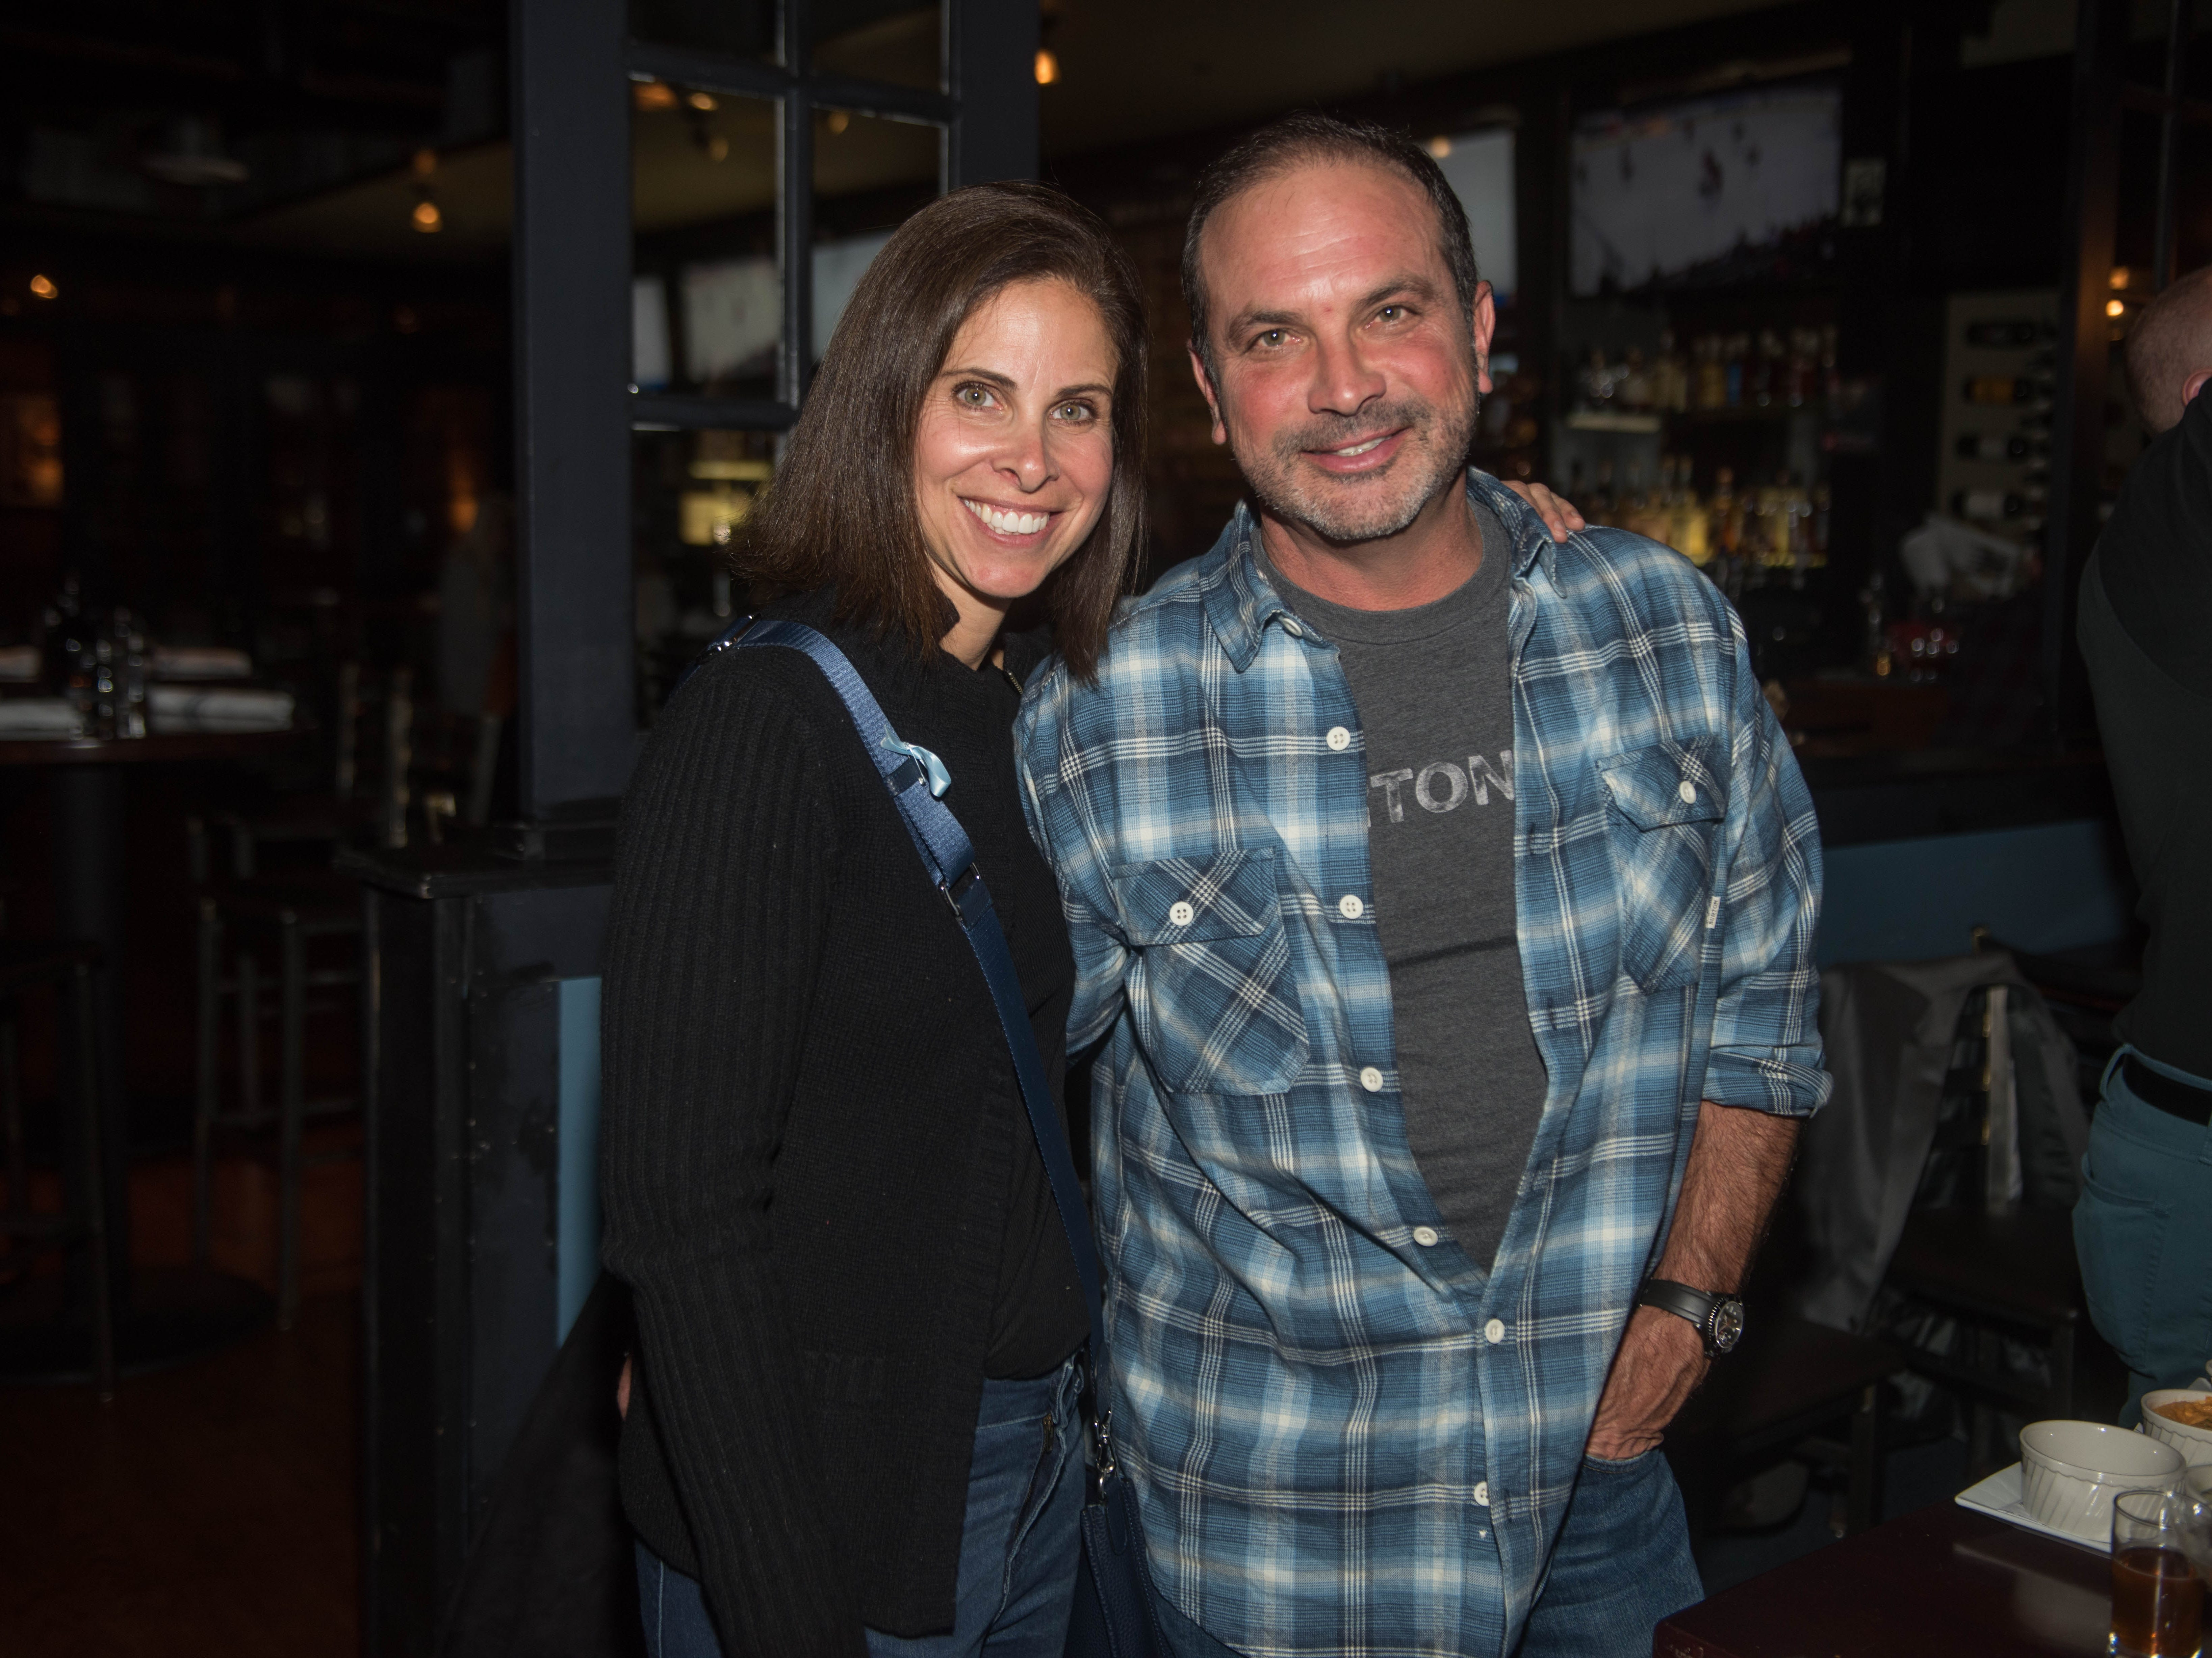 T.H. Waldman and Frank DeCarlo. (201) Magazine and NorthJersey.com held Taste Test Tuesday at he Dog and Cask in Rochelle Park with this month's cover model, Lauran Tuck and former cover model and former NY Giant Justin Tuck. 11/13/2018